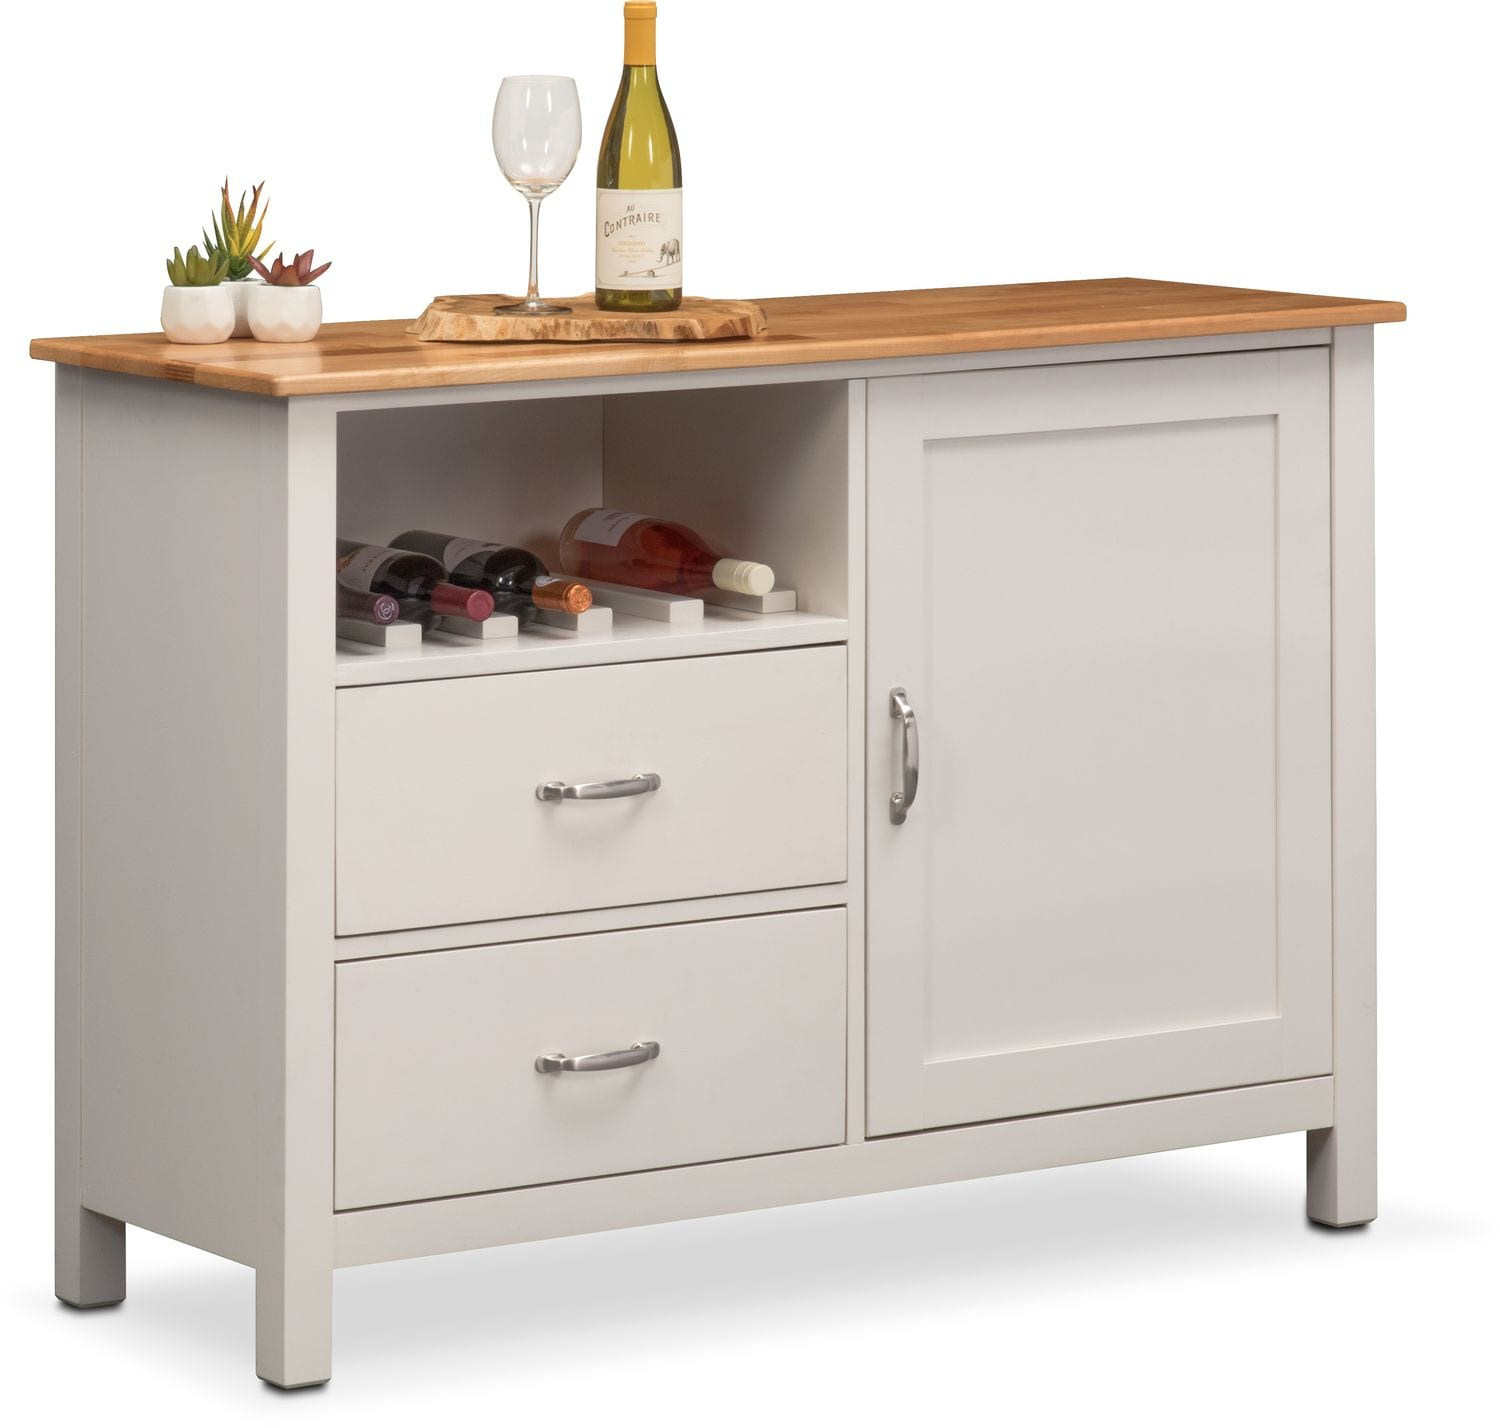 Nantucket Sideboard - Maple and White